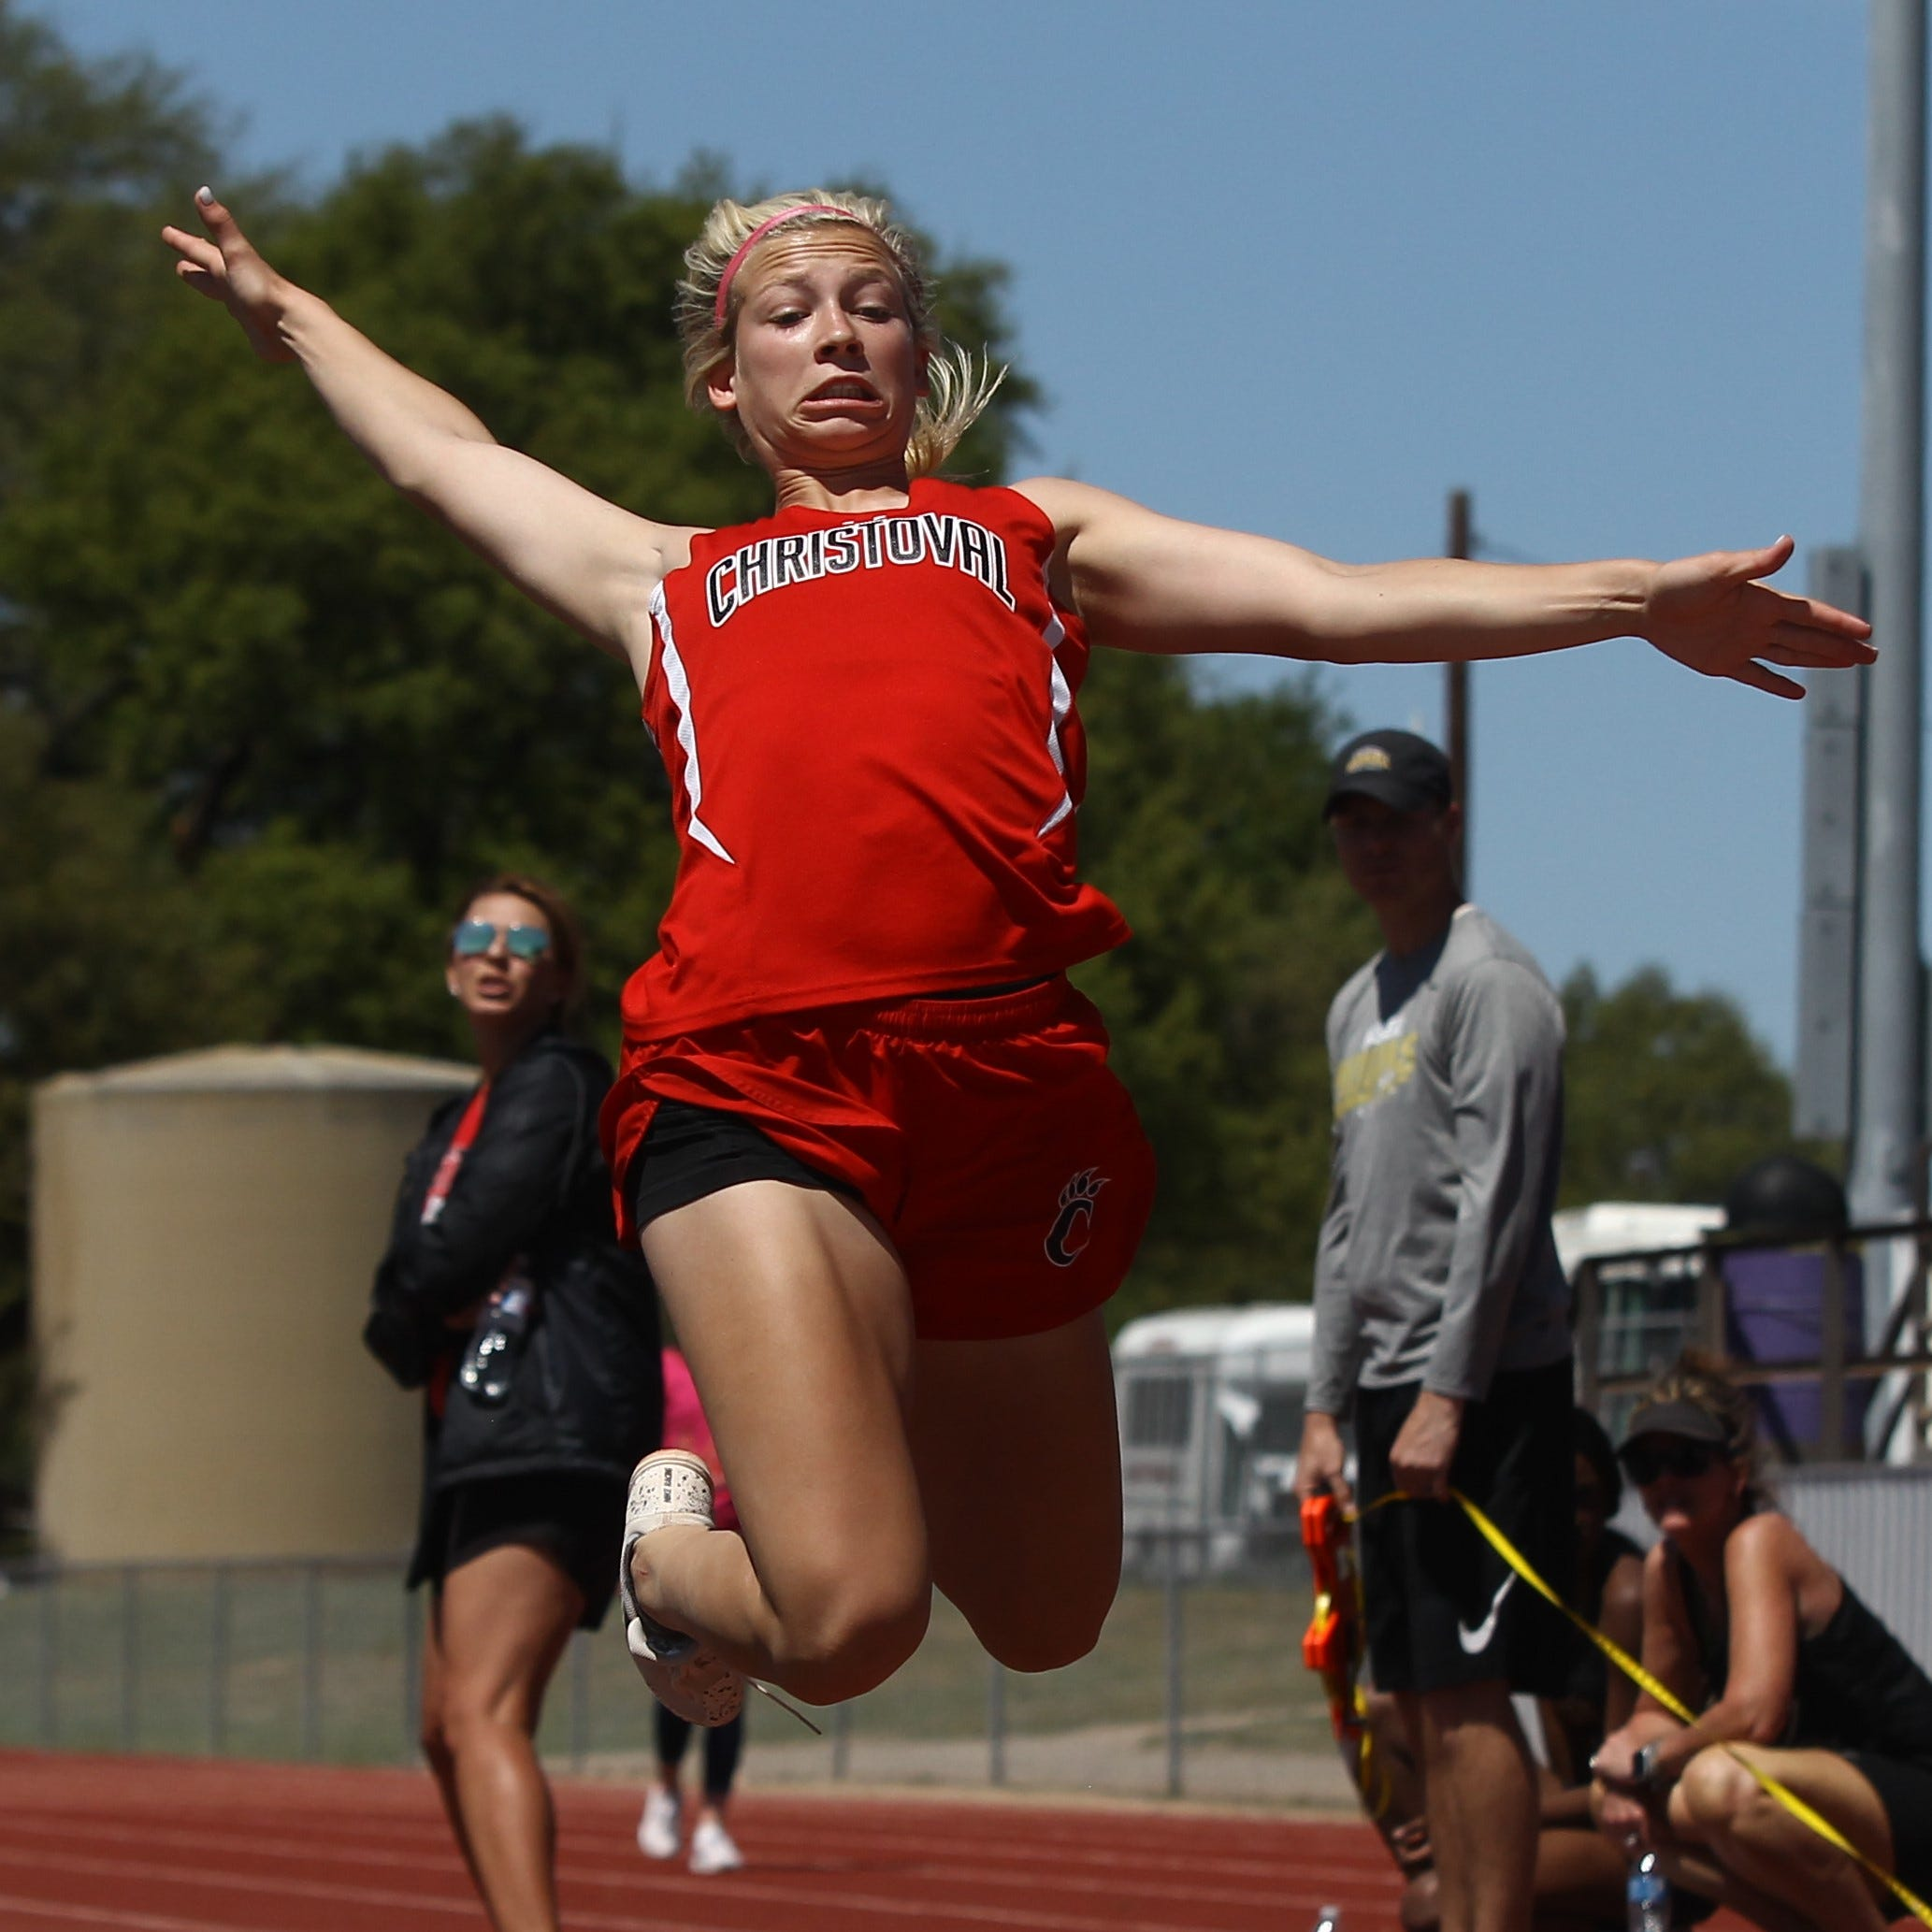 AREA TRACK: Christoval sophomore Vaughn a five-event regional qualifier